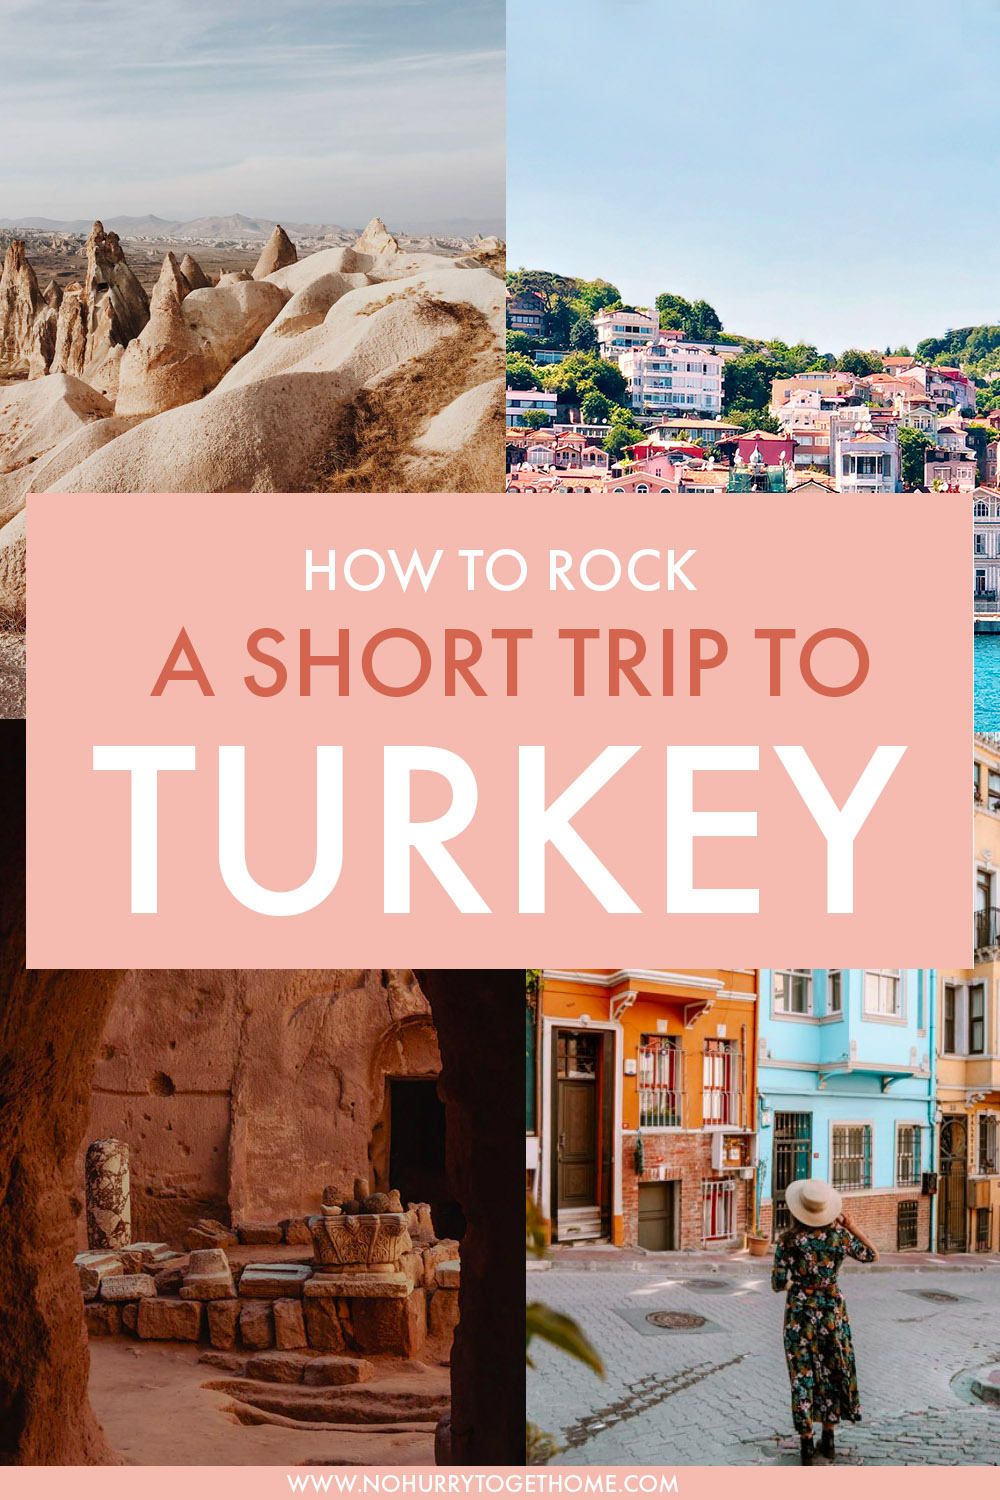 Traveling to Turkey soon and wondering what to do? There are so many amazing things to do in Turkey that planning a short itinerary can be tough! Here's how to spend a short, 5 day trip to Turkey and make the most out of your Turkey itinerary!